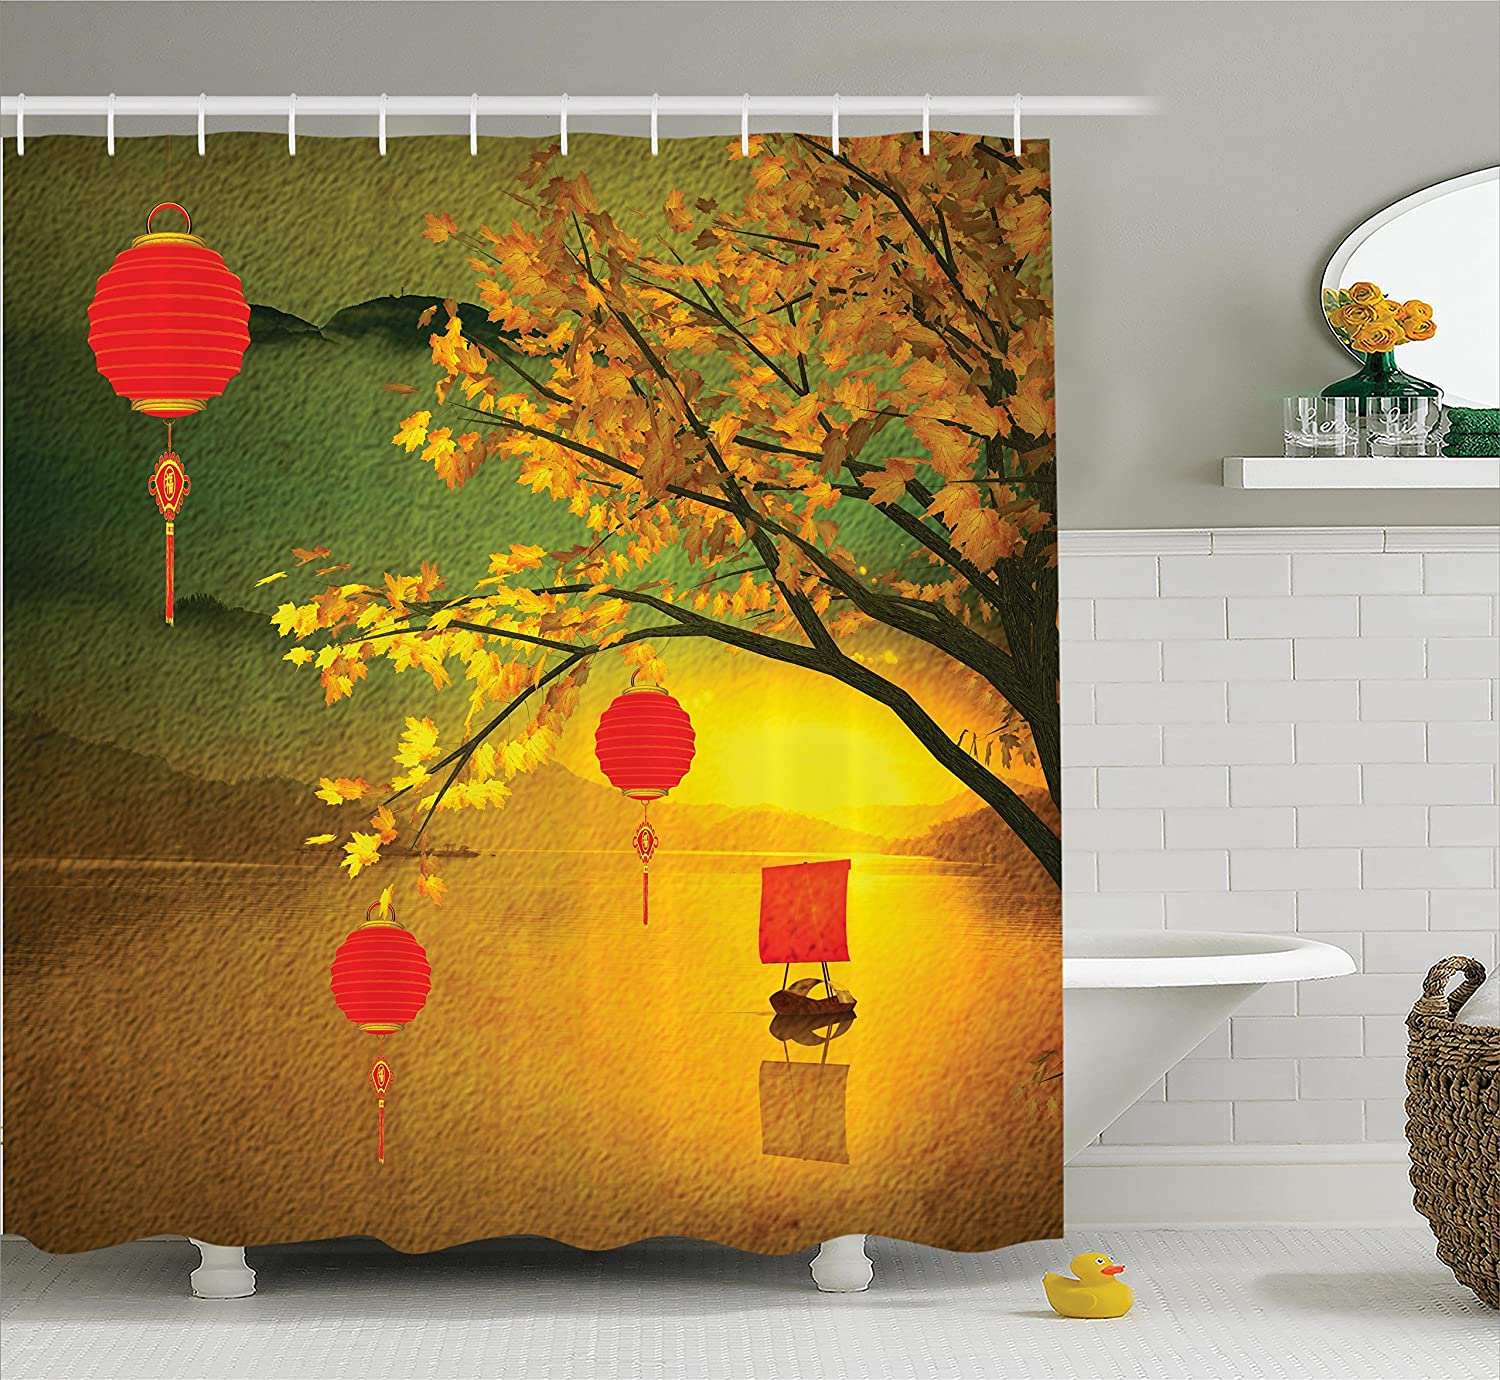 Amazon.com: Ambesonne Lantern Decor Shower Curtain Set, Traditional on climbing nightshade plant, bleeding heart plant, chinese paper lanterns, abutilon plant, chinese flying lanterns, lace aloe plant, rhododendron plant, snapdragon plant, baloon flower plant, chinese money plant, chinese tomato plant, flowering maple plant, foxglove plant, chinese rain tree, bittersweet plant, lupine plant, chinese red plant, verbena plant, bird of paradise plant, chinese sky lanterns,